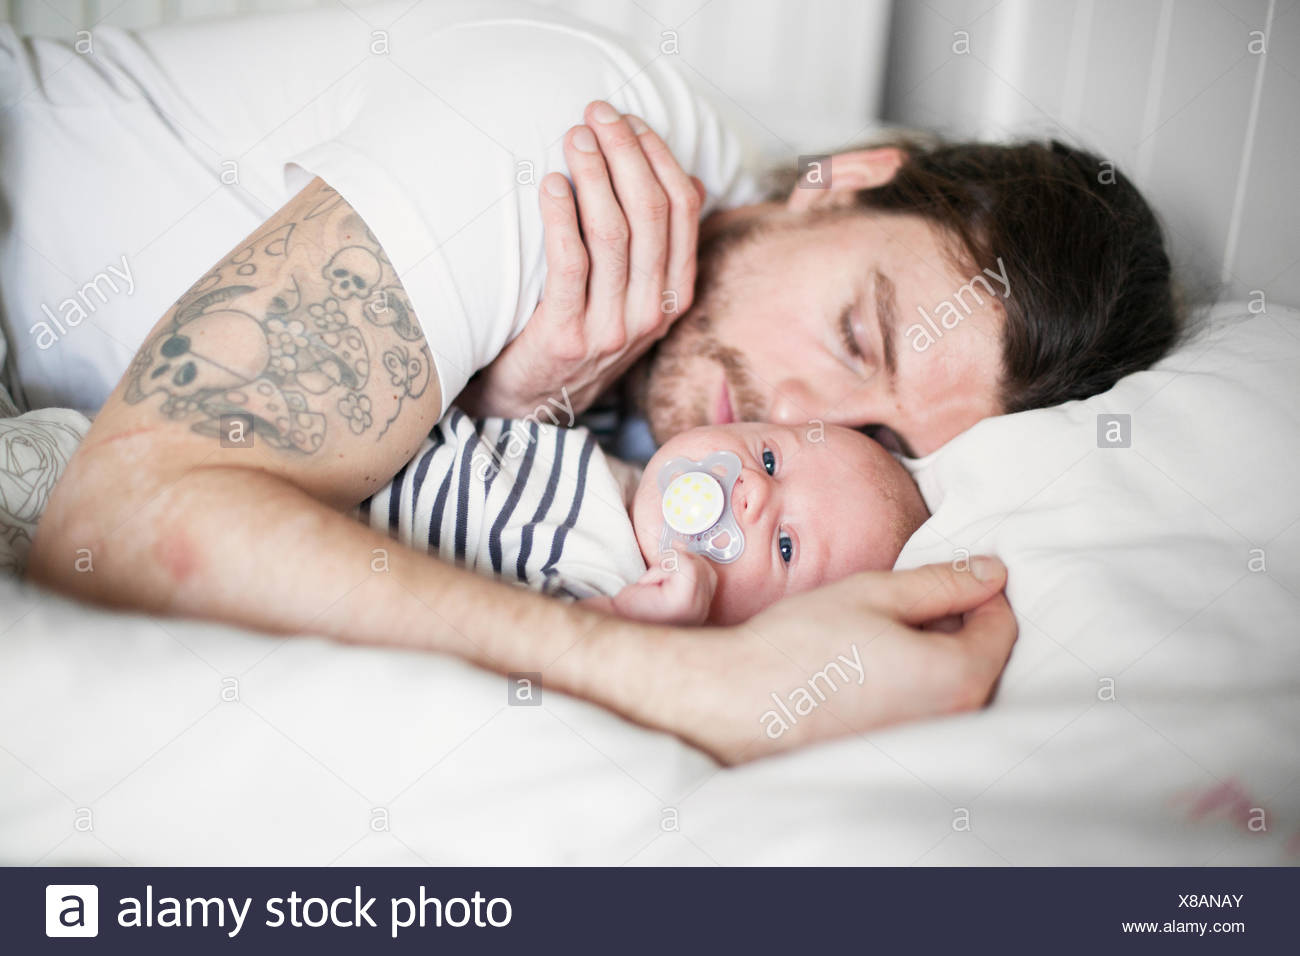 Sweden, Father and baby boy (0-1 months) resting - Stock Image